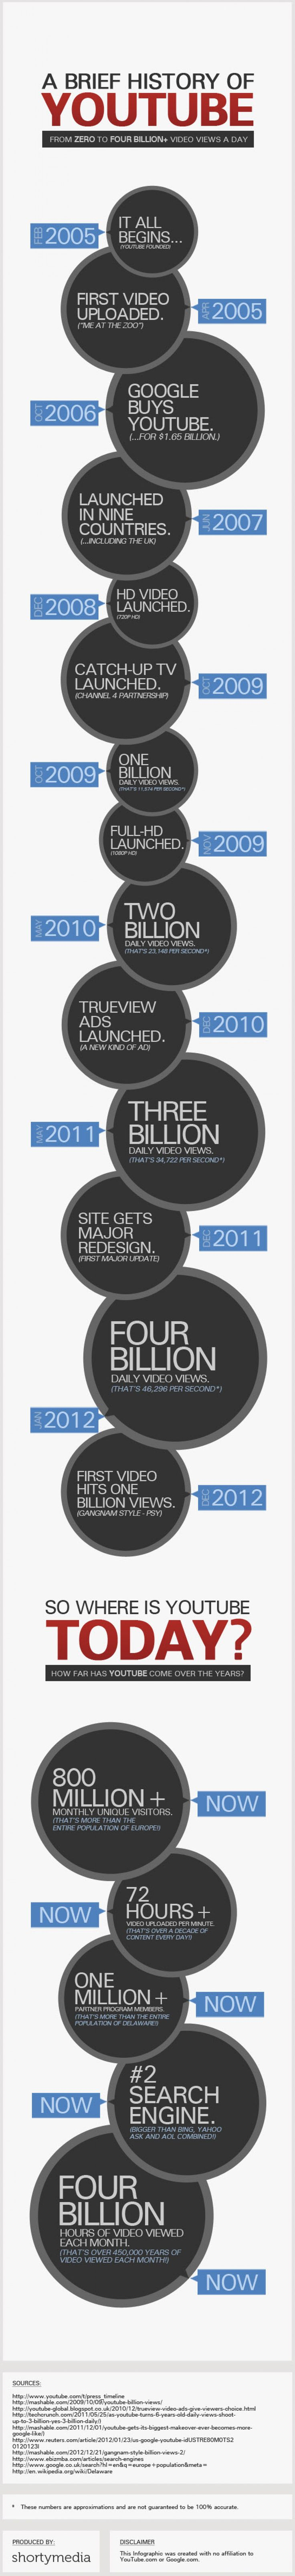 A Brief History of YouTube: From Zero to Four Billion+ Video Views Per Day